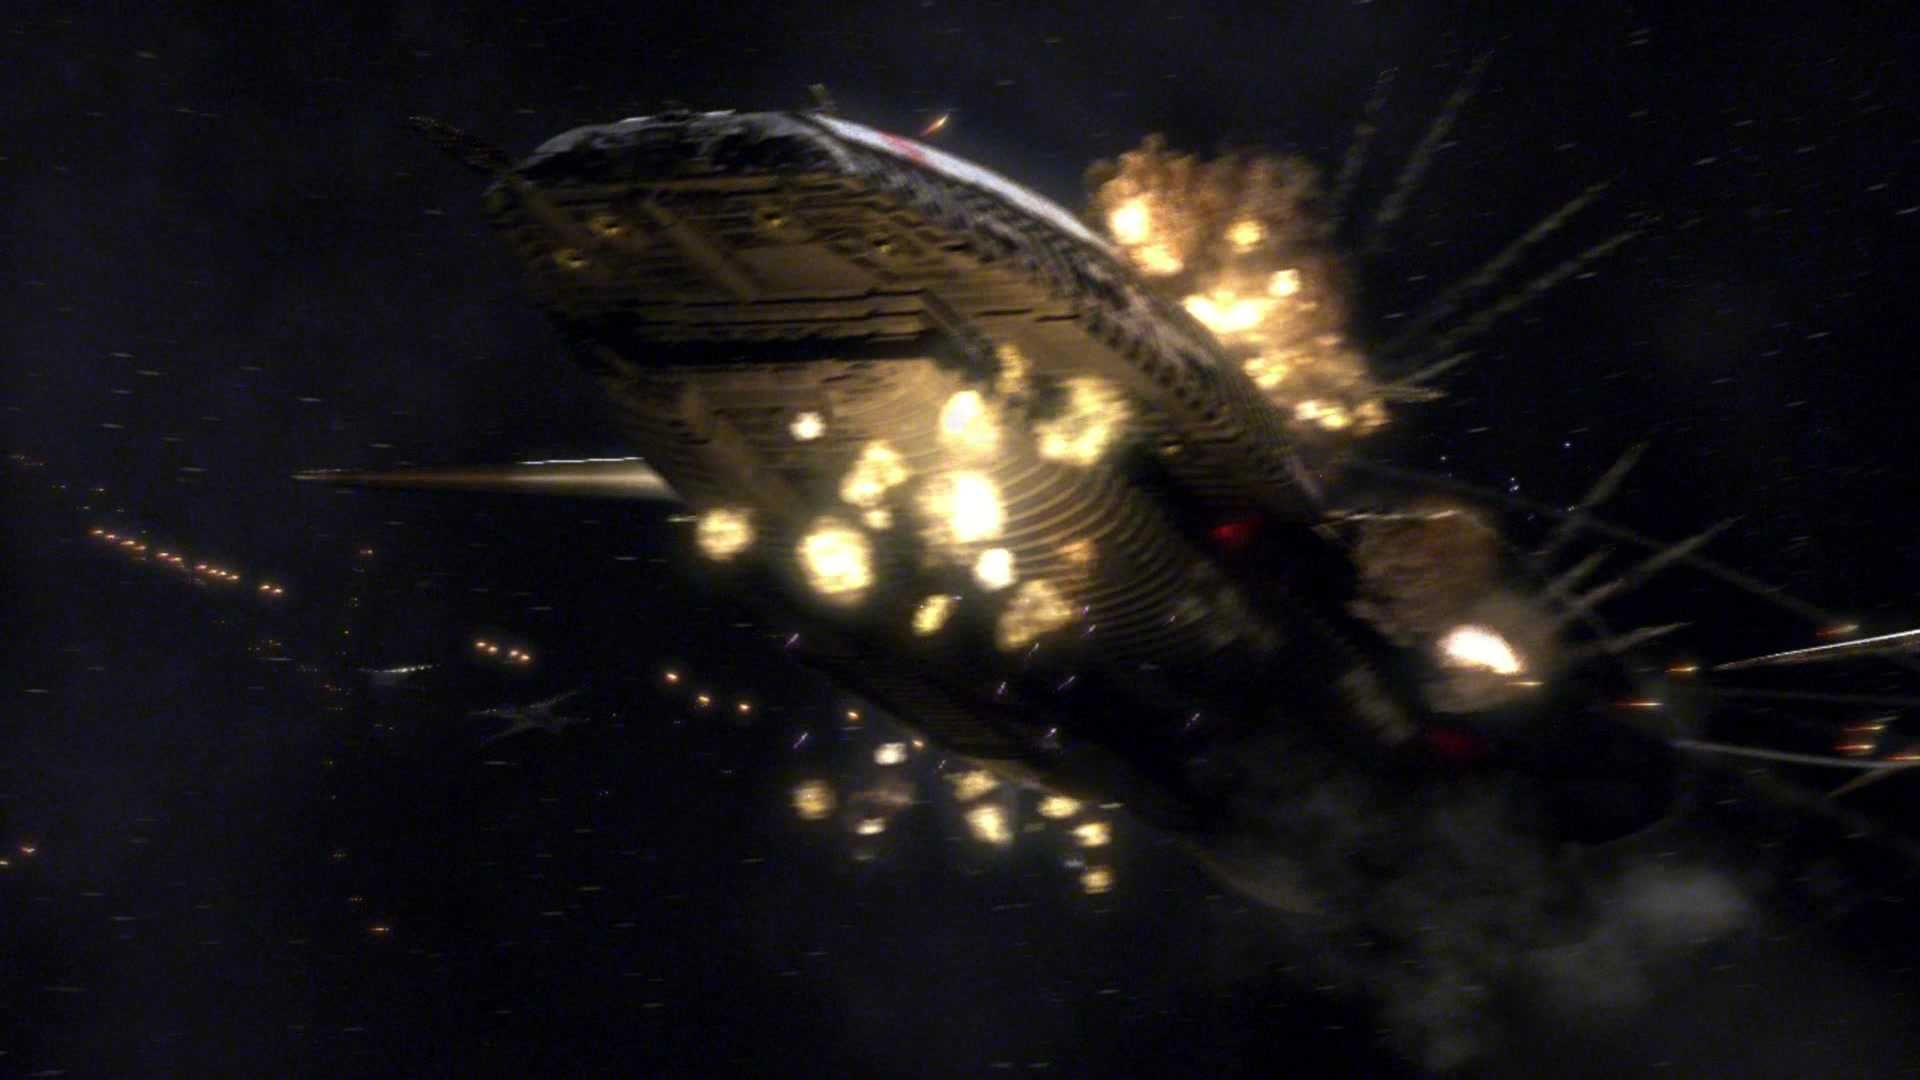 Liberating New Caprica A Bad Day For Galactica And A Good Day